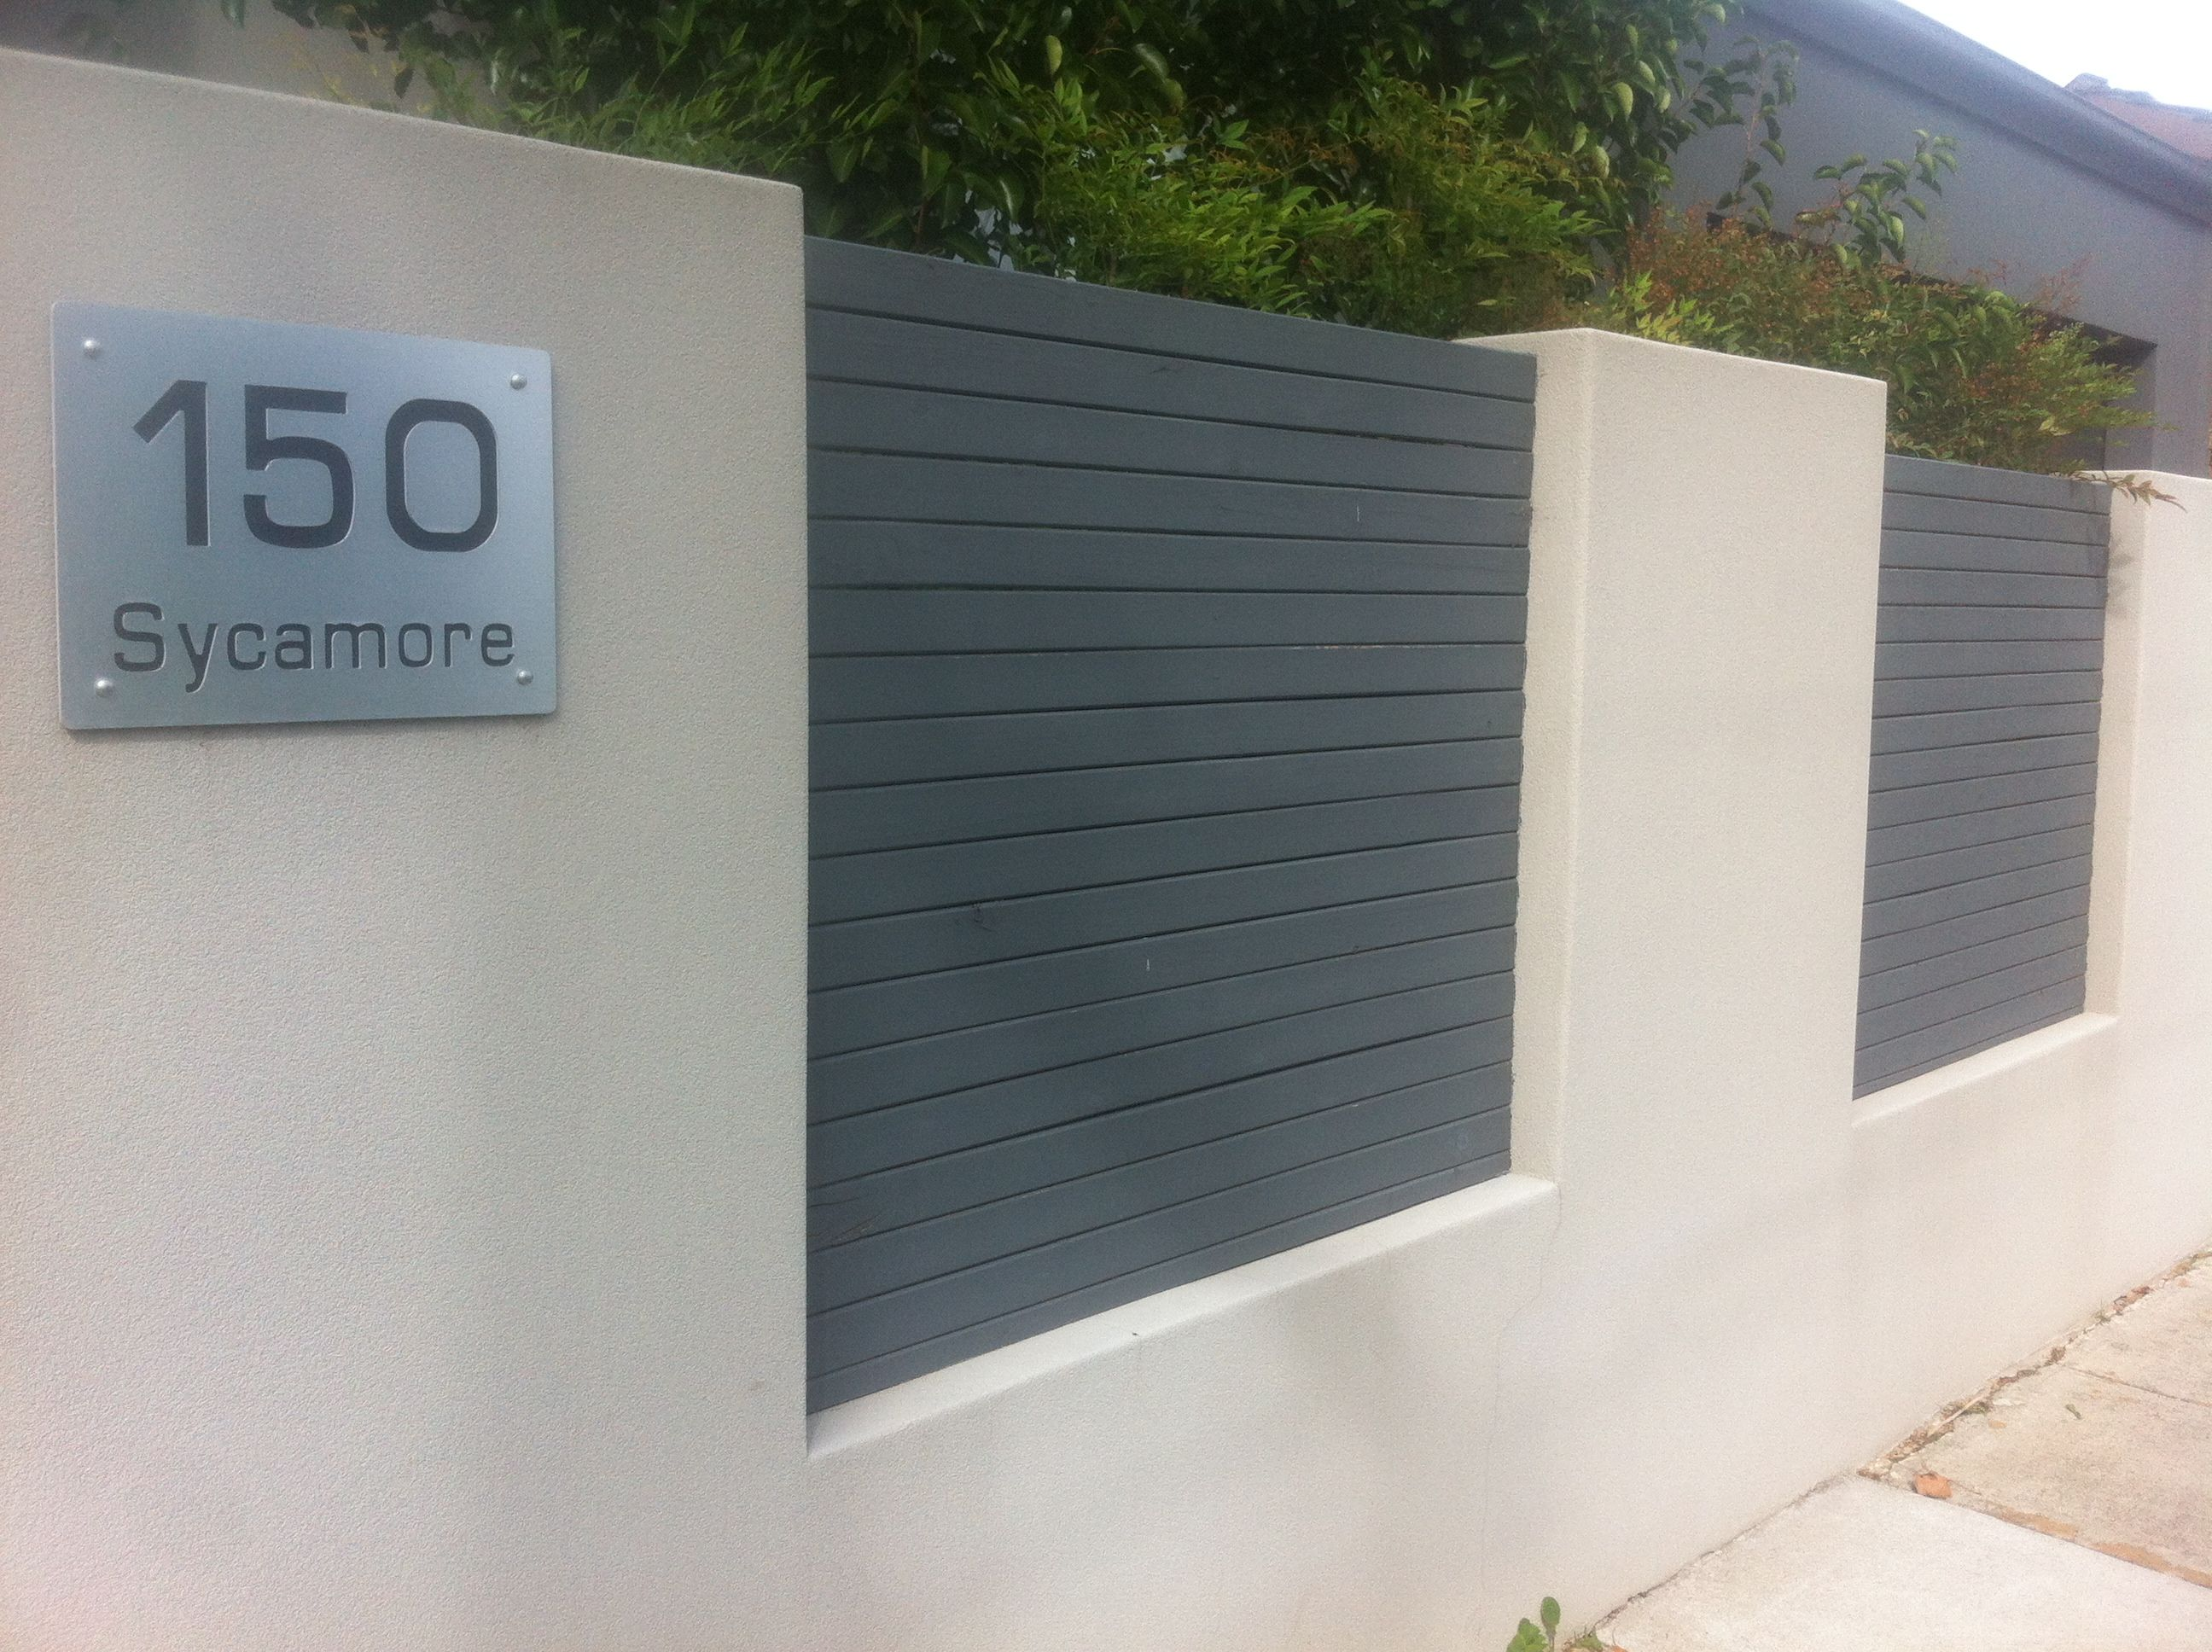 Rendered Fence Large House No Aluminium Slats To Soften Fence Look Needs Hedge Above And Colour Change Of Wall To Suit Fence Design Brick Fence Modern Fence